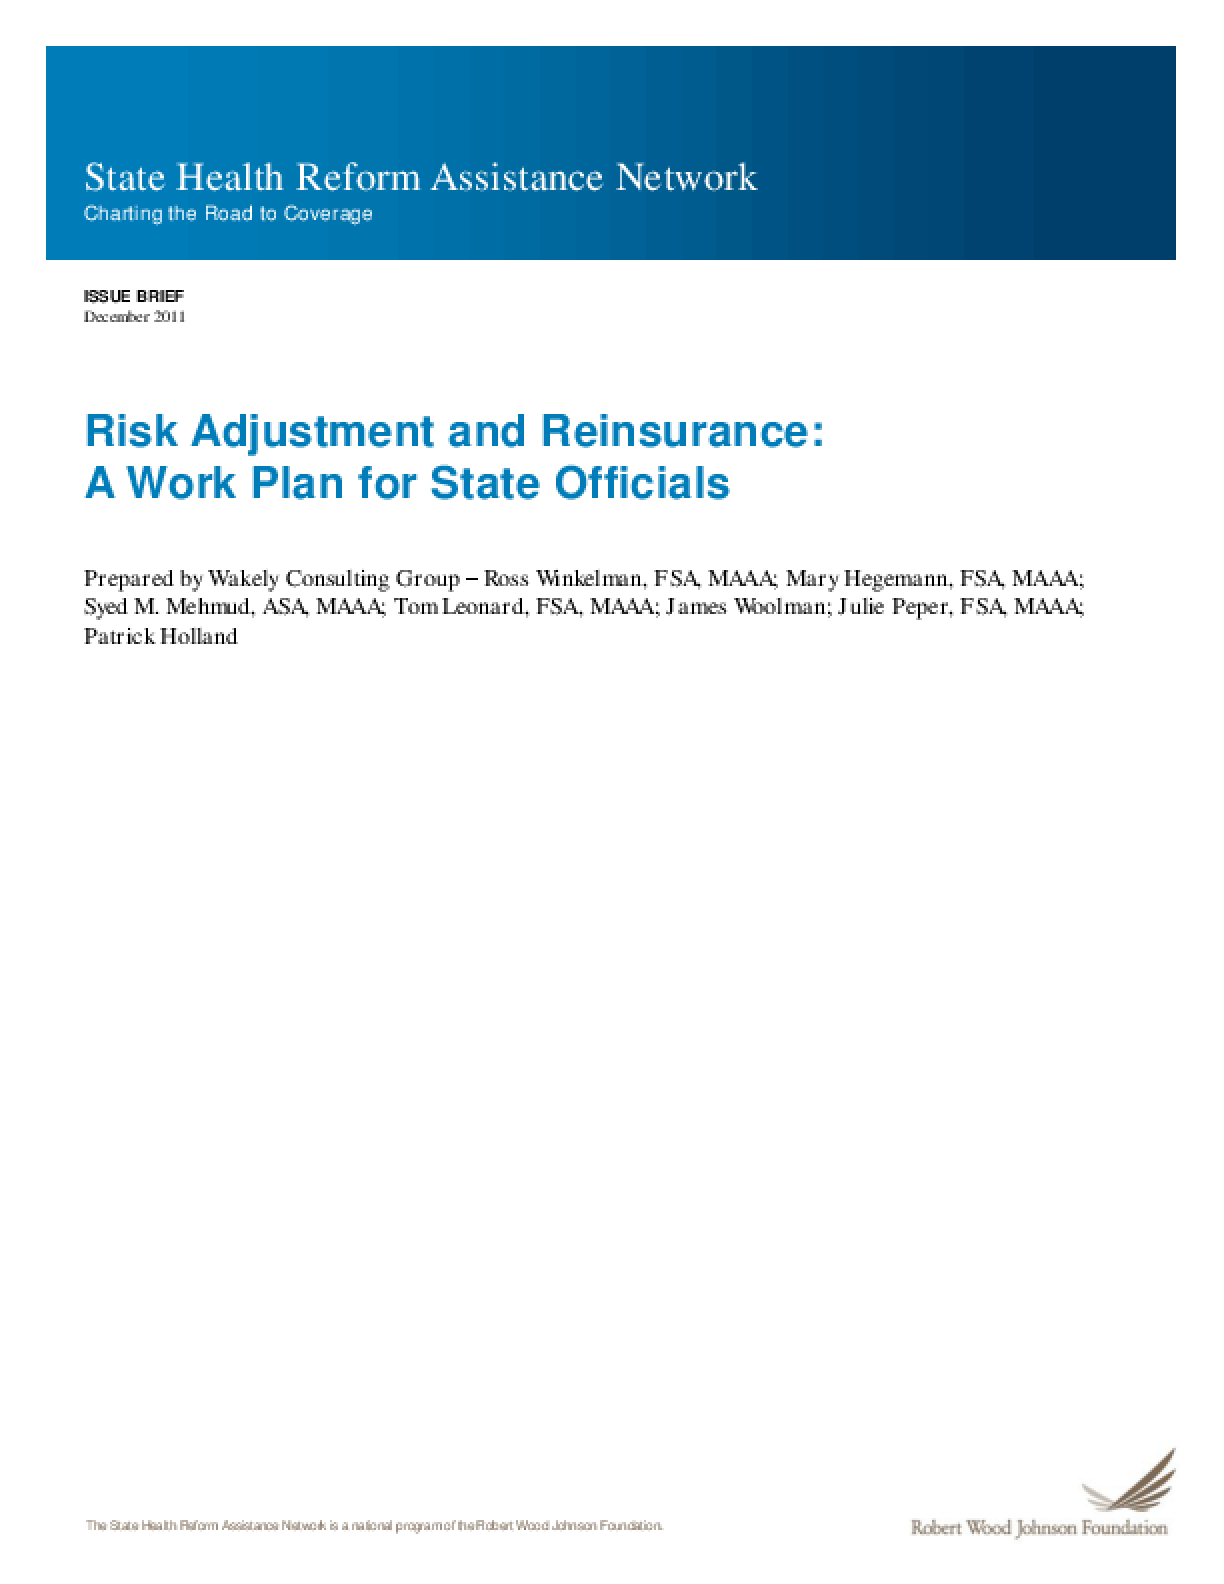 Risk Adjustment and Reinsurance: A Work Plan for State Officials